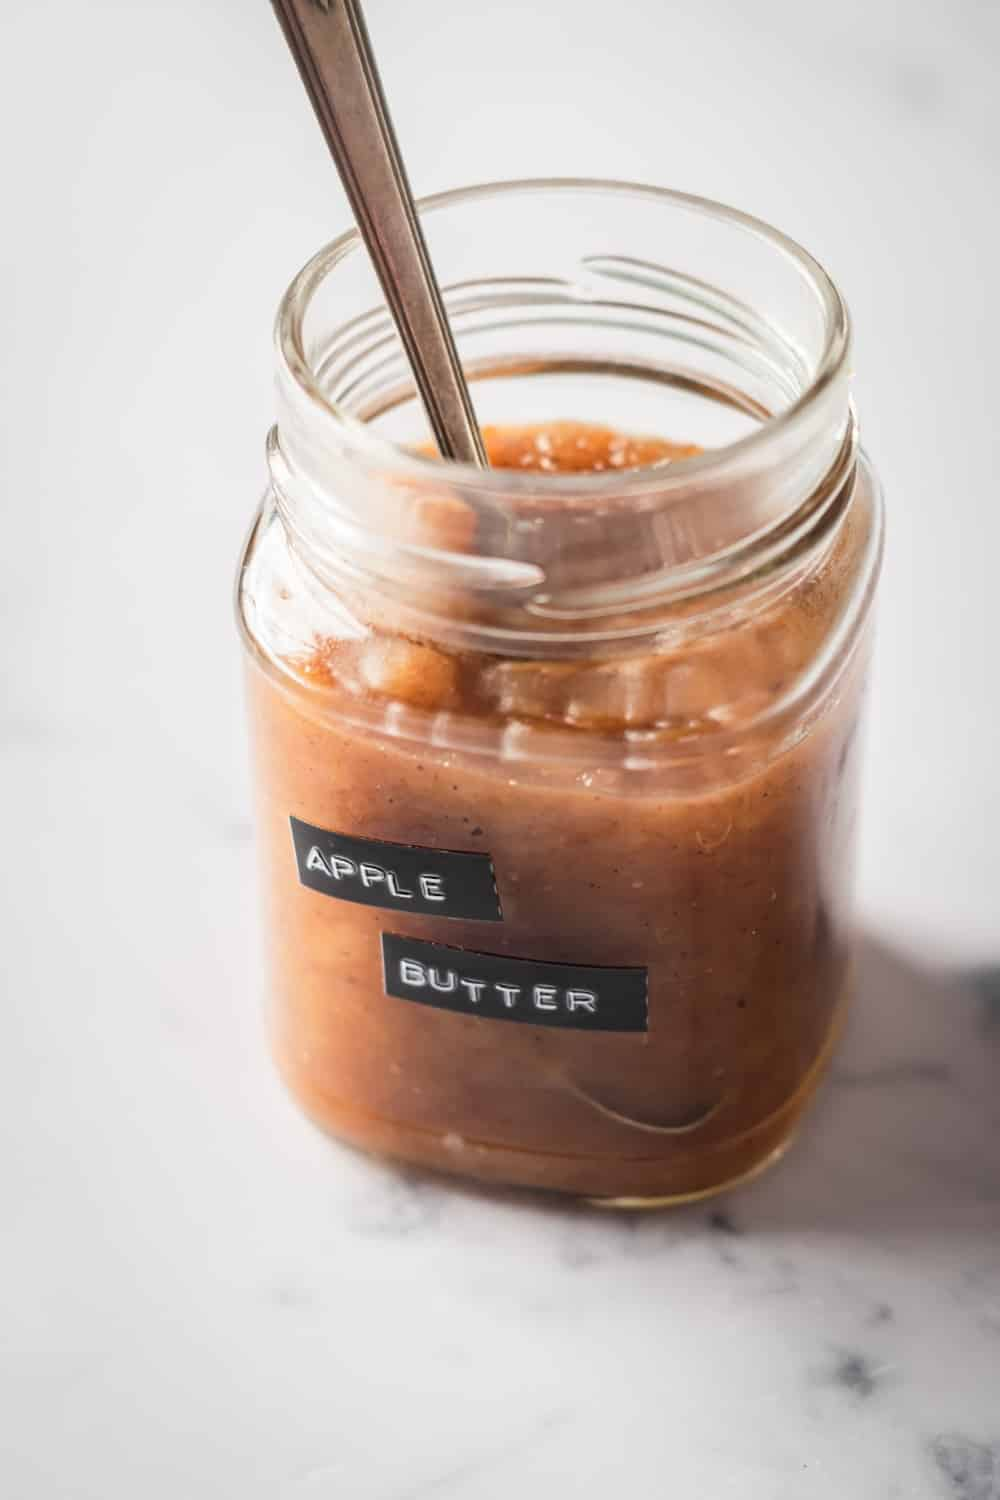 A glass jar filled with apple butter with a spoon in it. The jar has apple butter labeled on it.